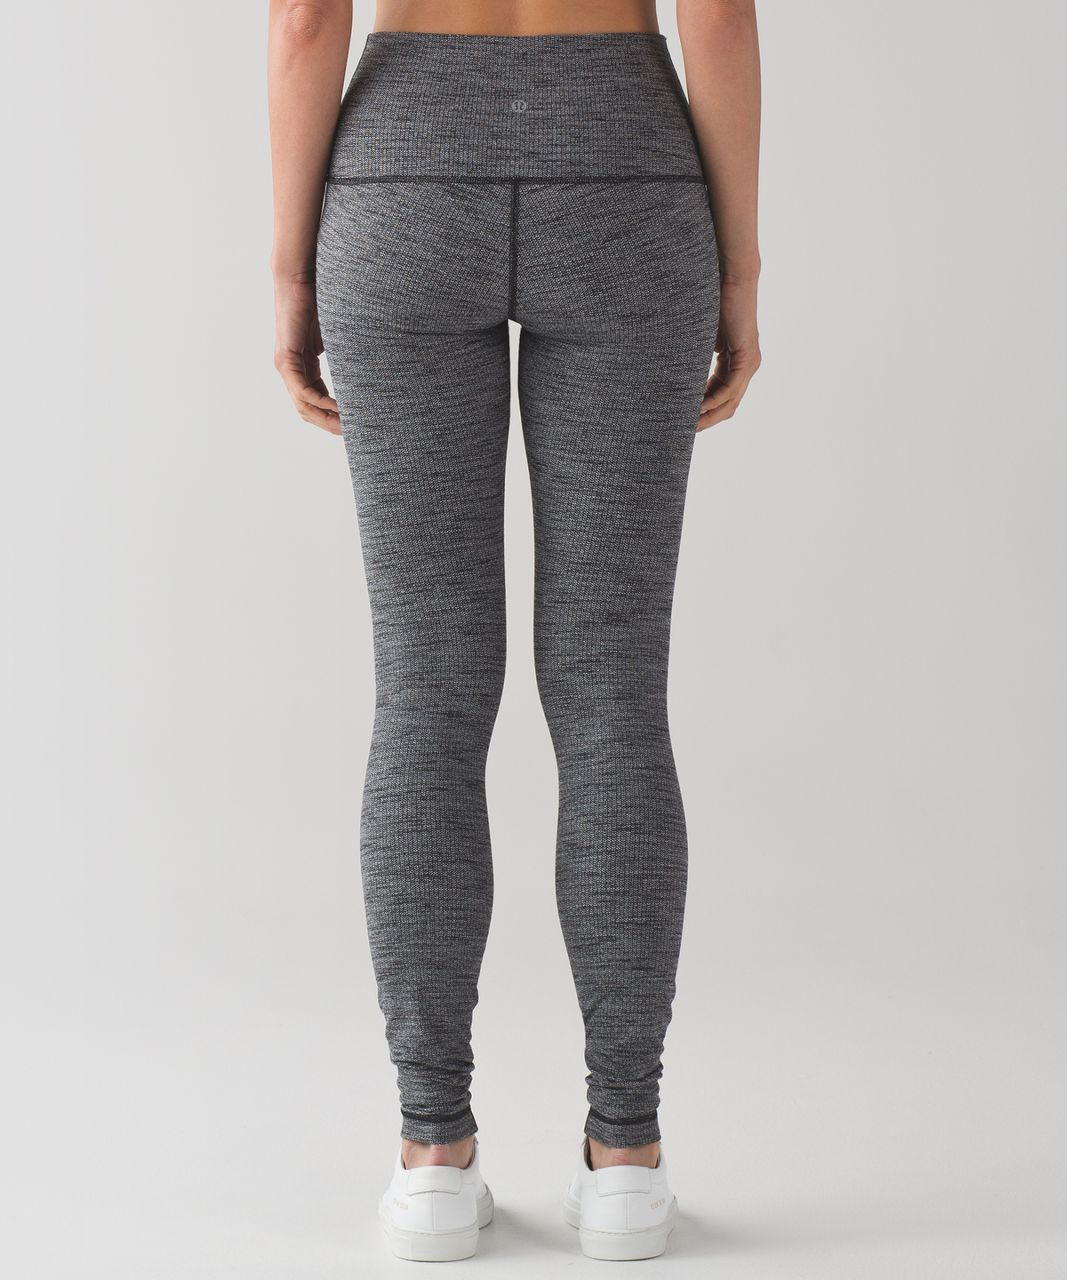 Lululemon Wunder Under Pant (Hi-Rise) - Luon Variegated Knit Black Heathered Black